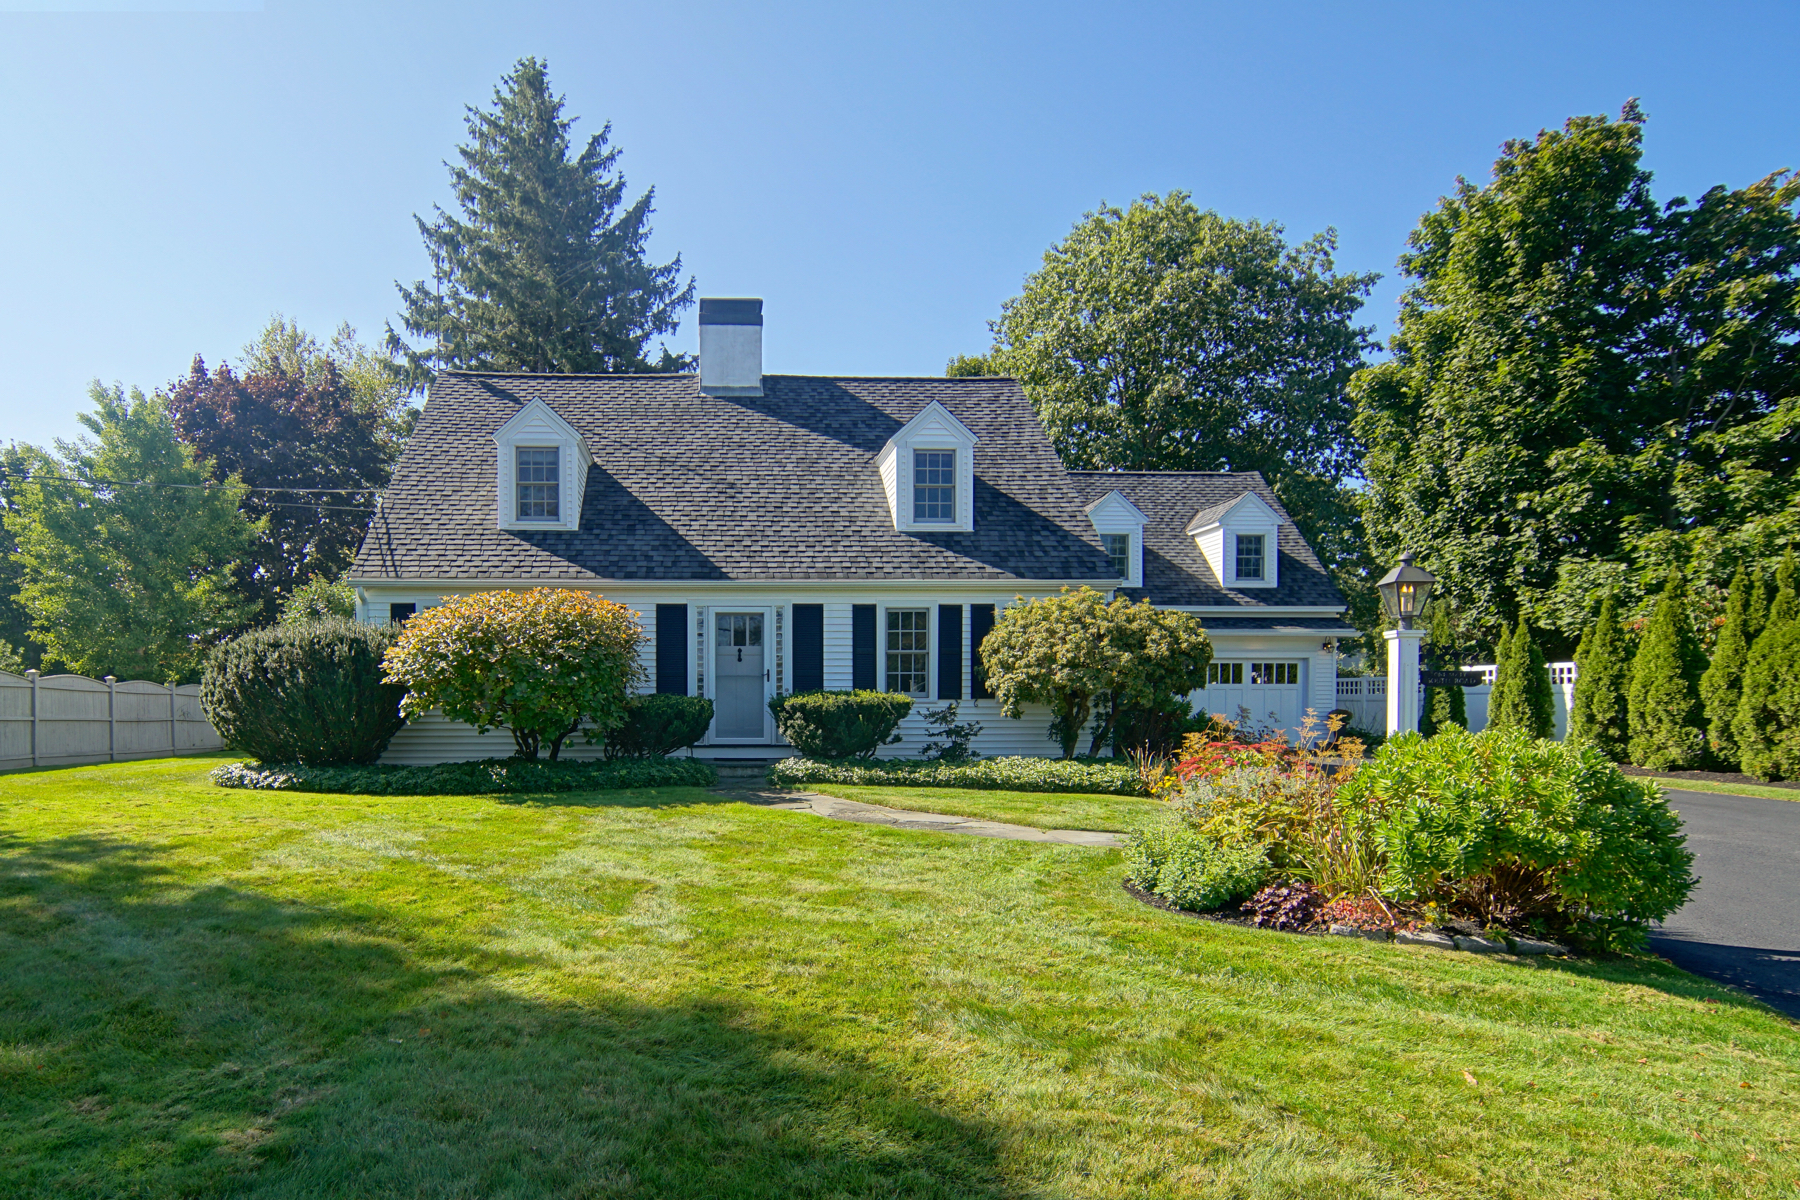 Single Family Homes for Active at Stunning Home Overlooking Abenaqui Country Club 160 South Road Rye Beach, New Hampshire 03871 United States